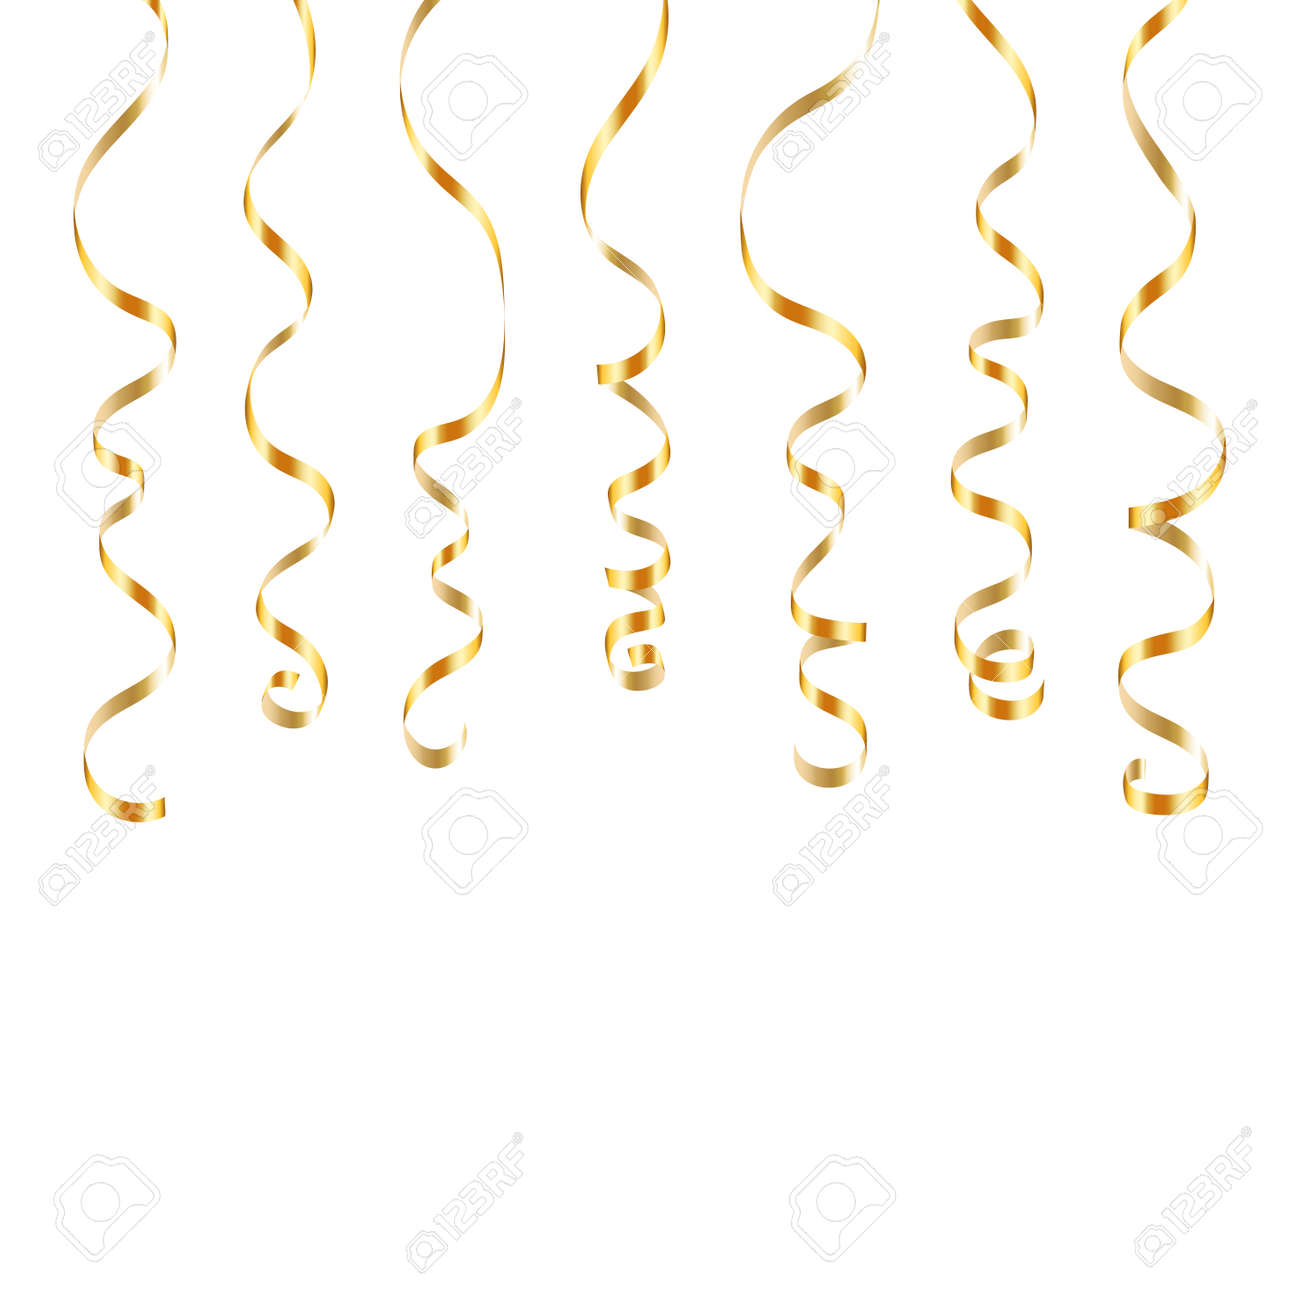 golden serpentine on transparent background colorful streamers design decoration party